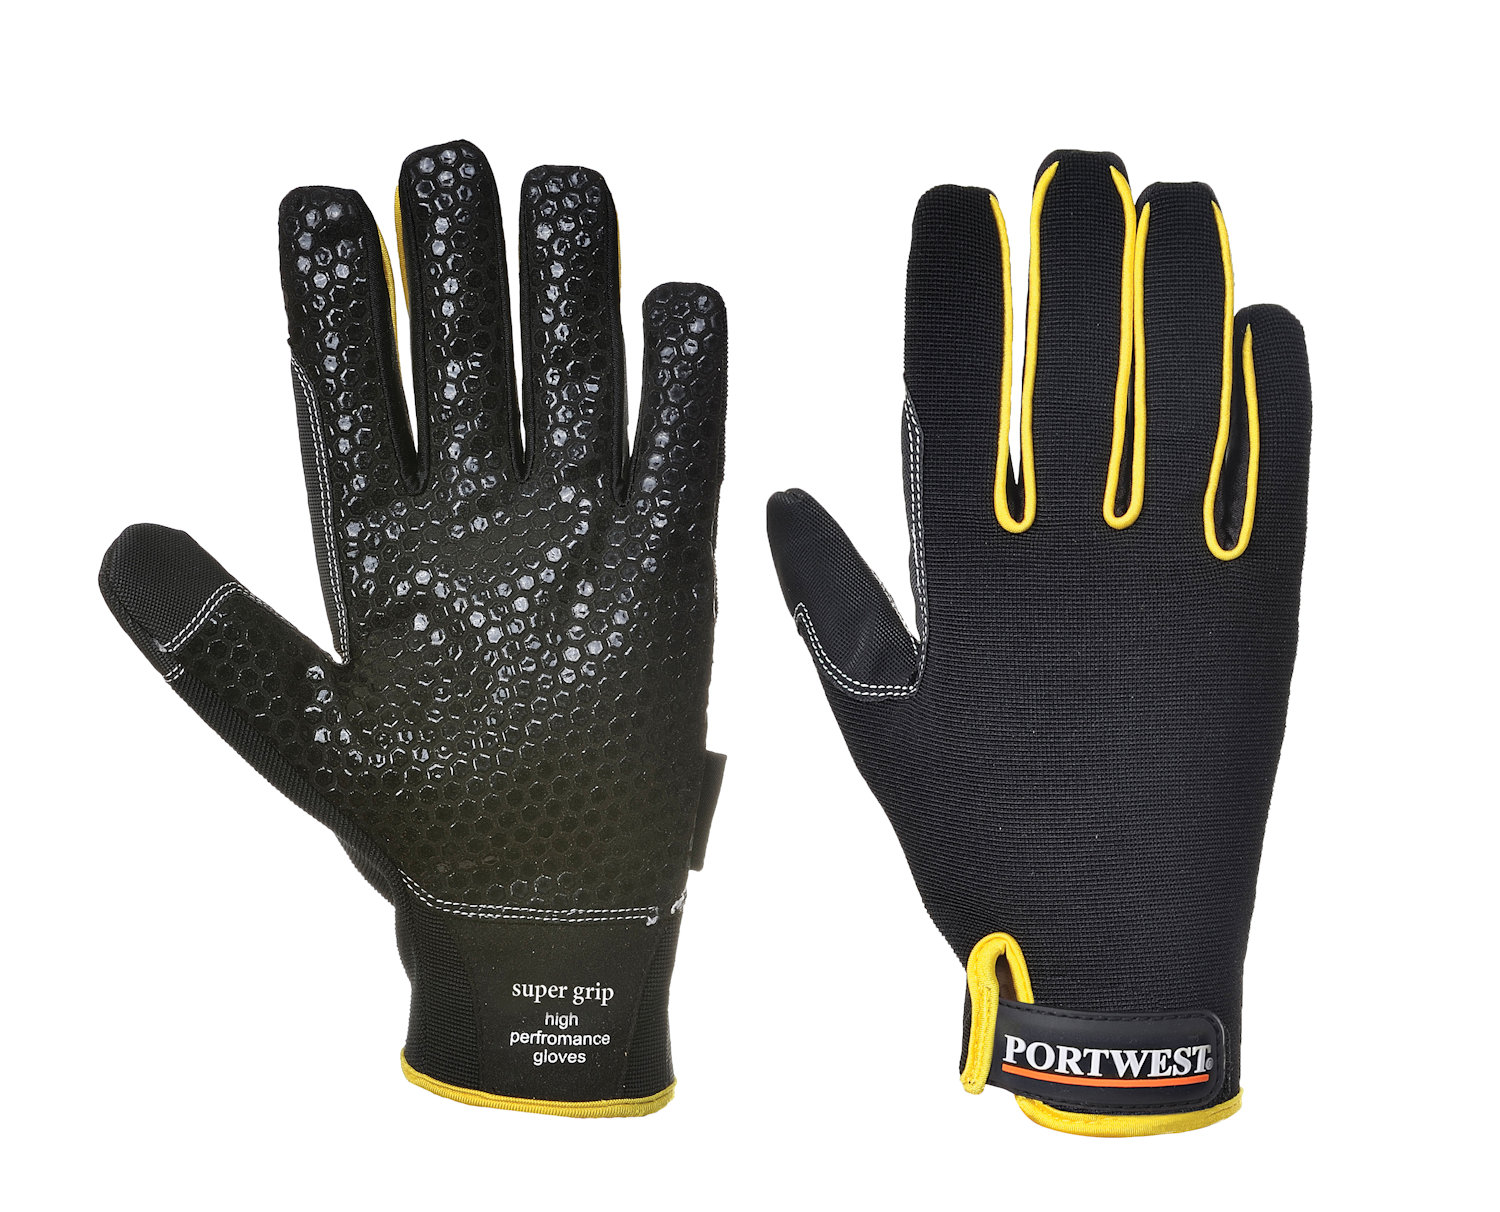 Portwest A730 glove